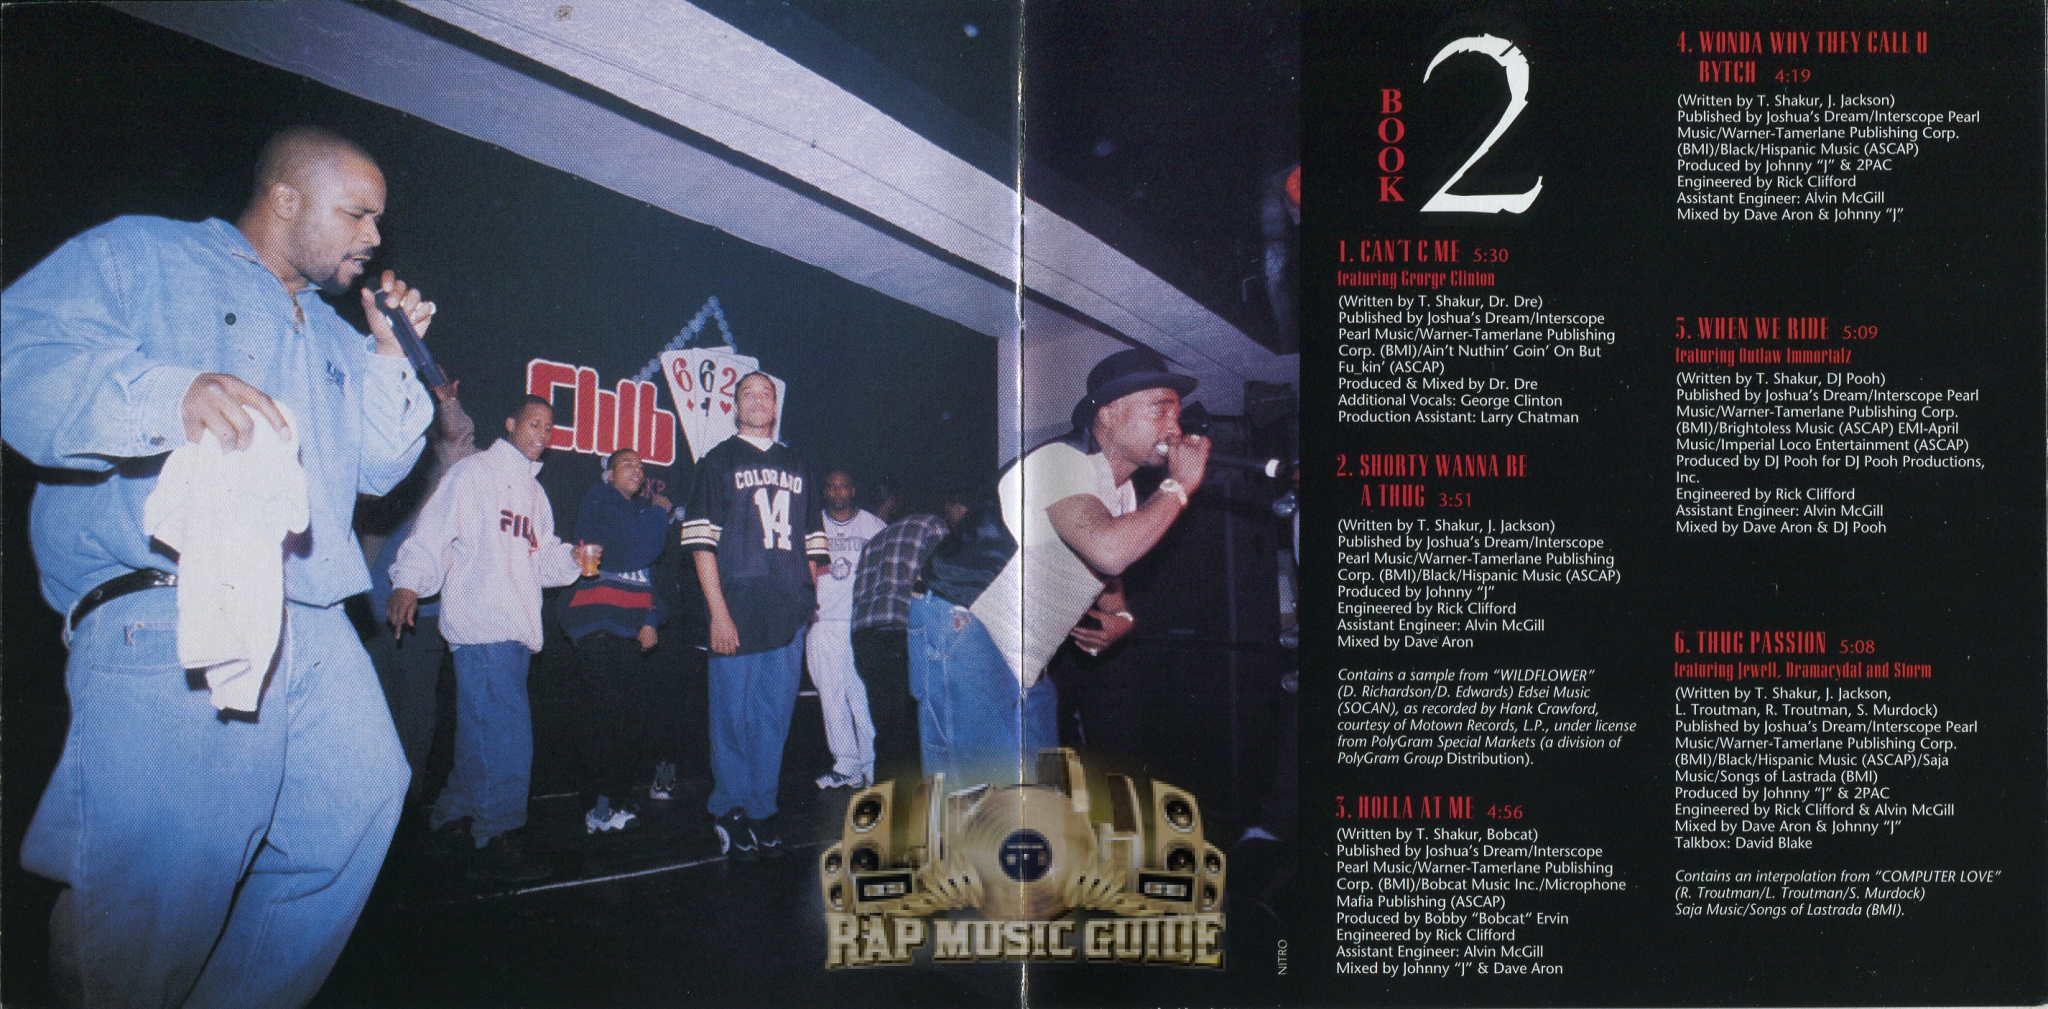 2Pac - All Eyez On Me: 1st Press  CD | Rap Music Guide